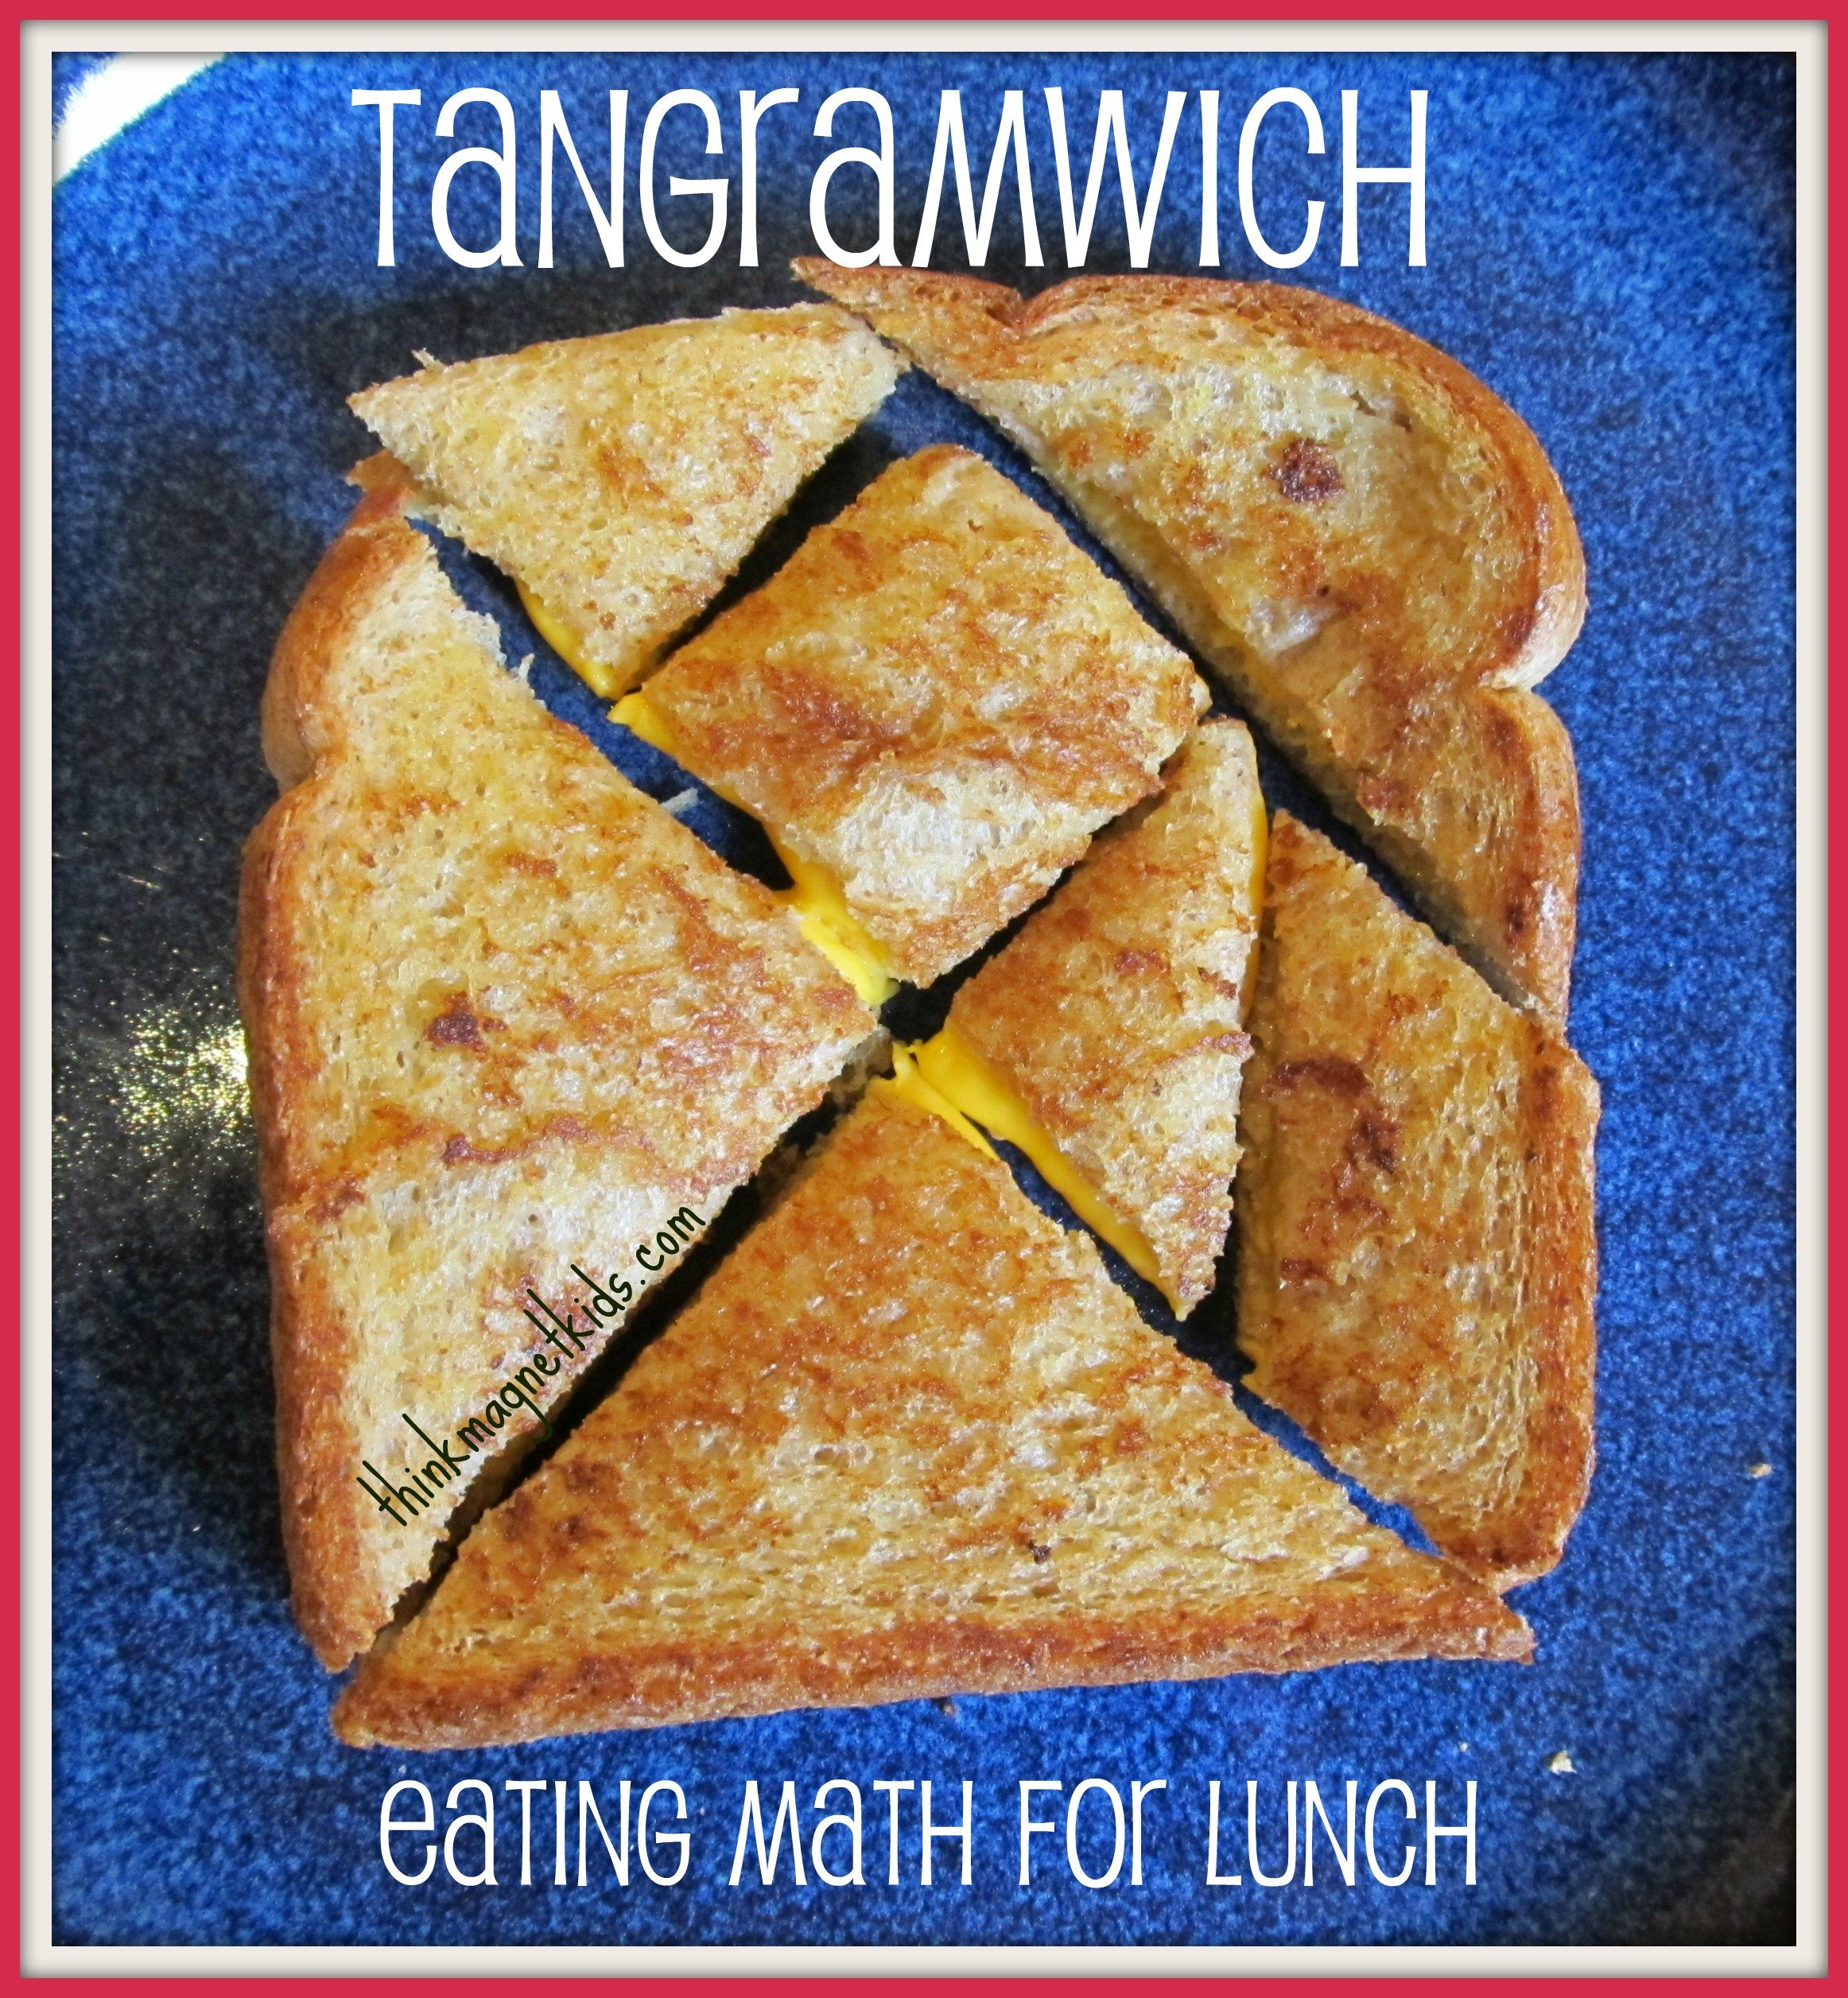 Puzzlewiches - Tangramwich!  Sandwich puzzles to add some educational fun to lunch time!